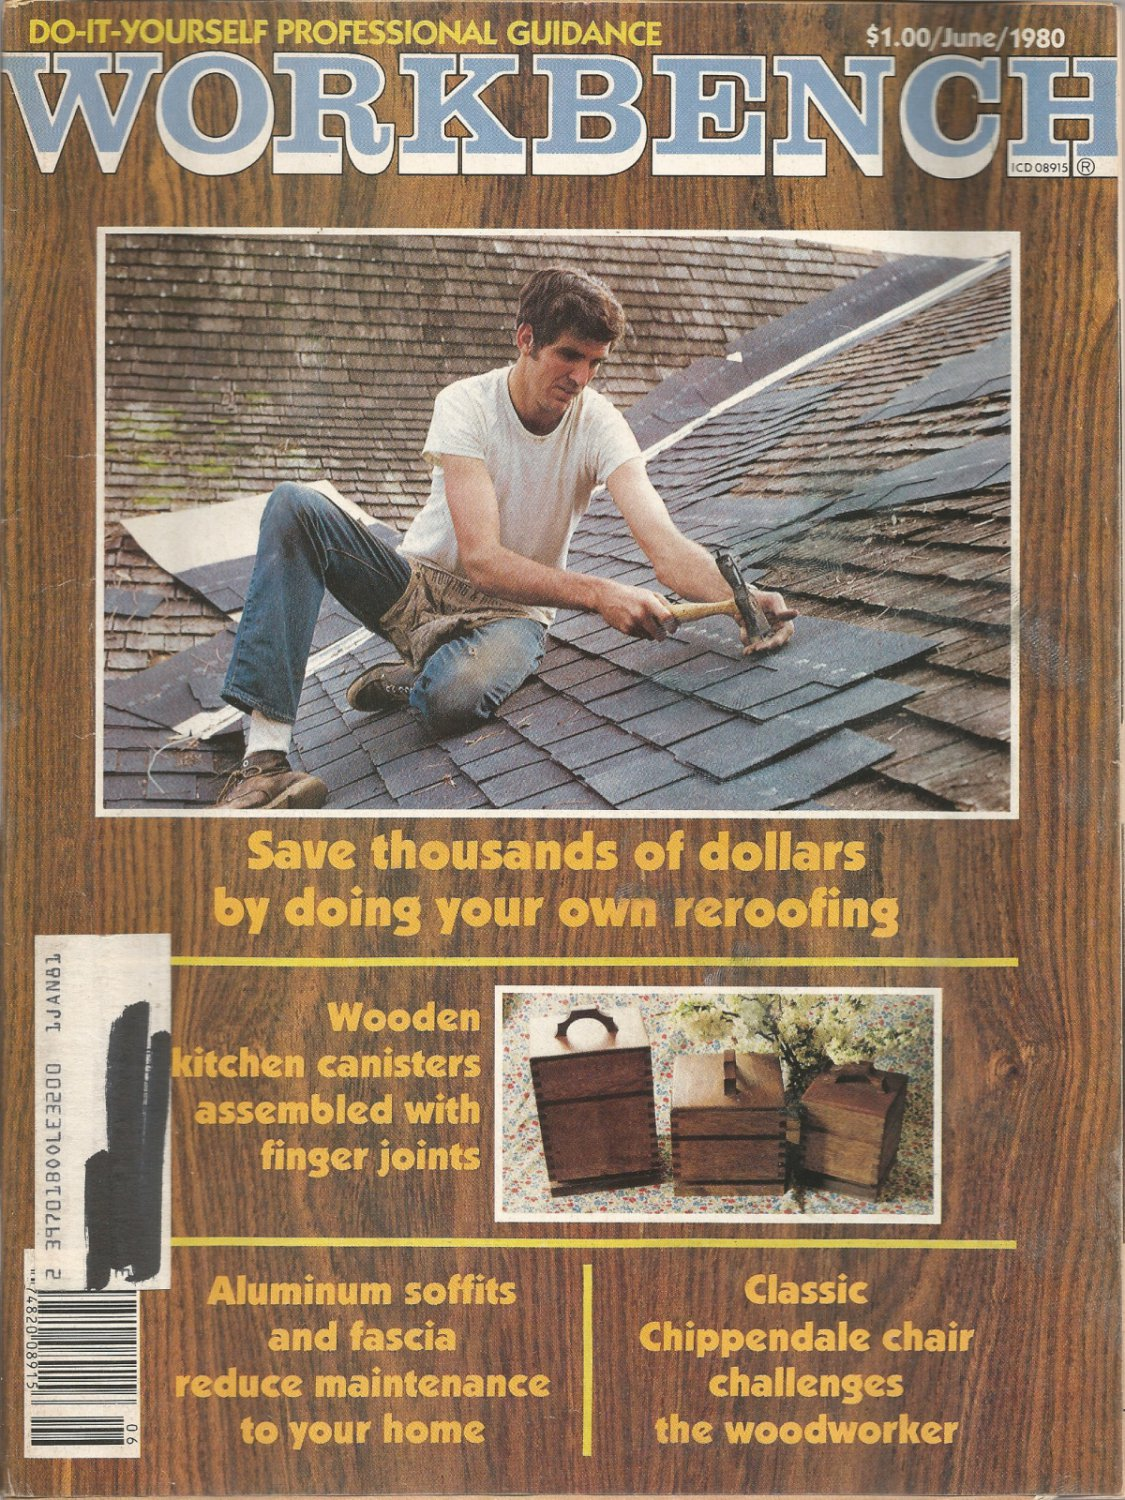 Workbench magazine- Do it yourself professional guidance-  June 1980- Doing your own reroofing